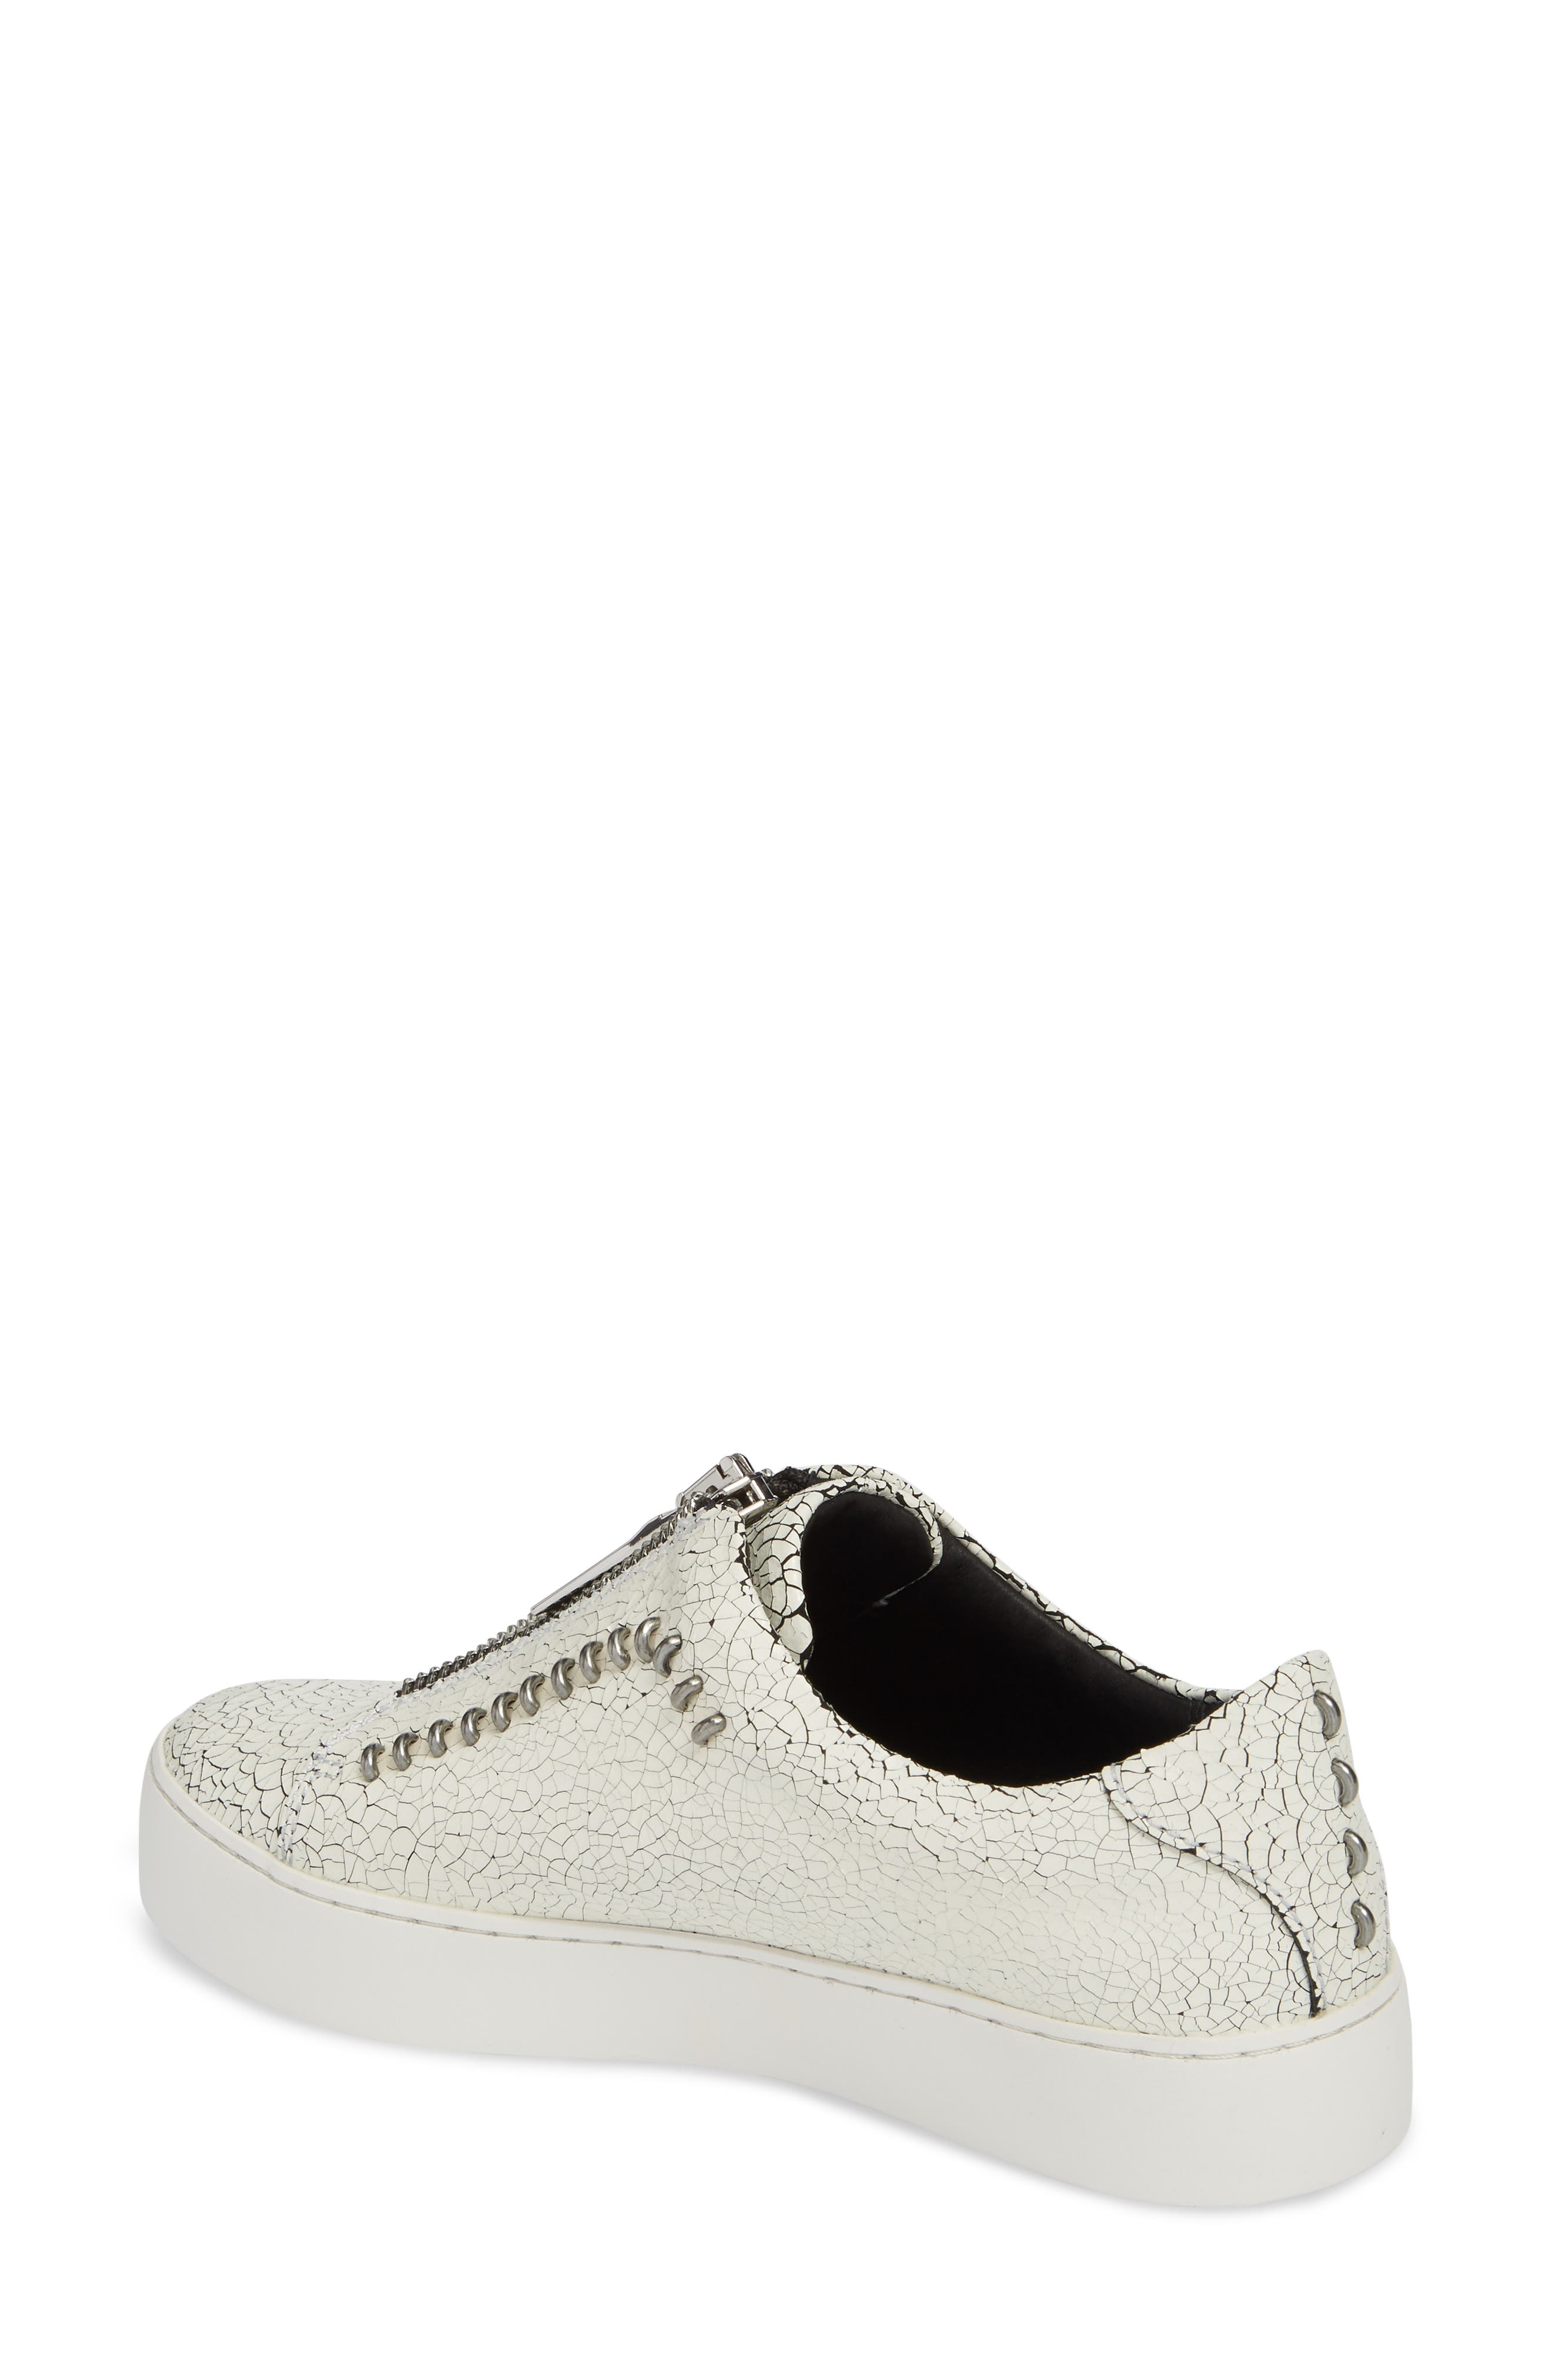 Lena Rebel Zip Sneaker,                             Alternate thumbnail 2, color,                             WHITE LEATHER